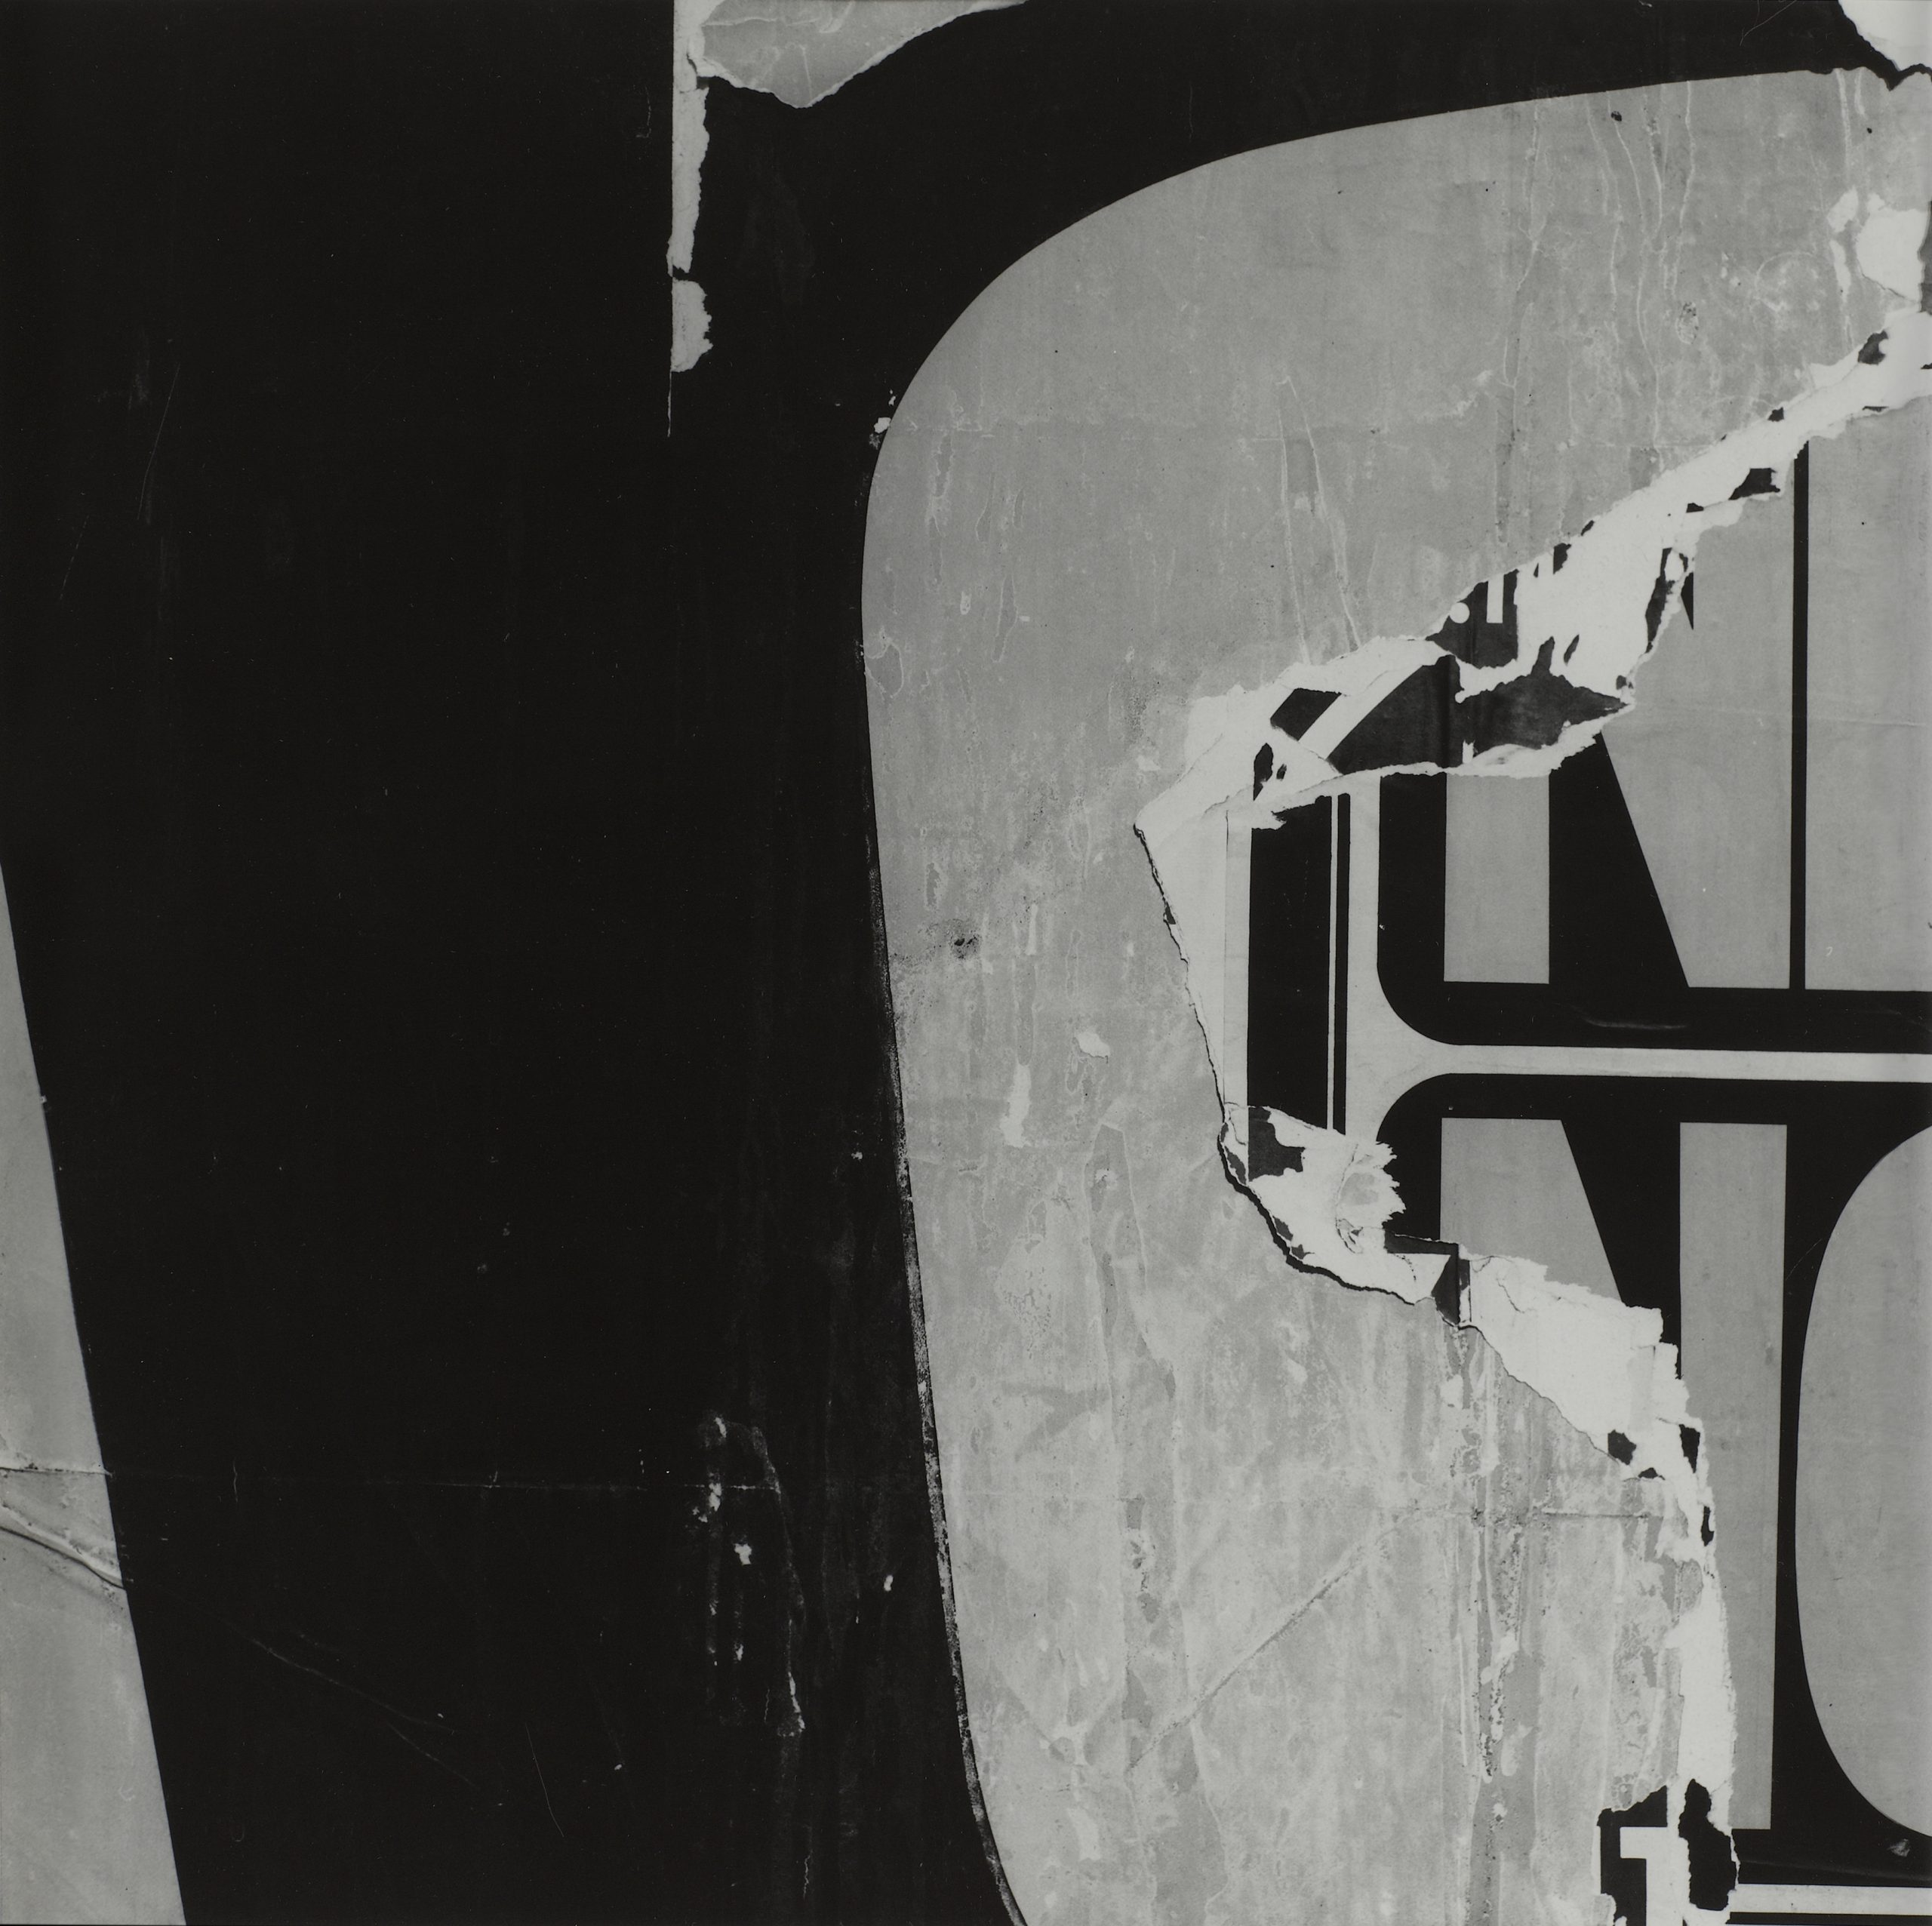 Black and white photograph of layered torn signs that reveal an obscured 'NO' present on the sign underneath.